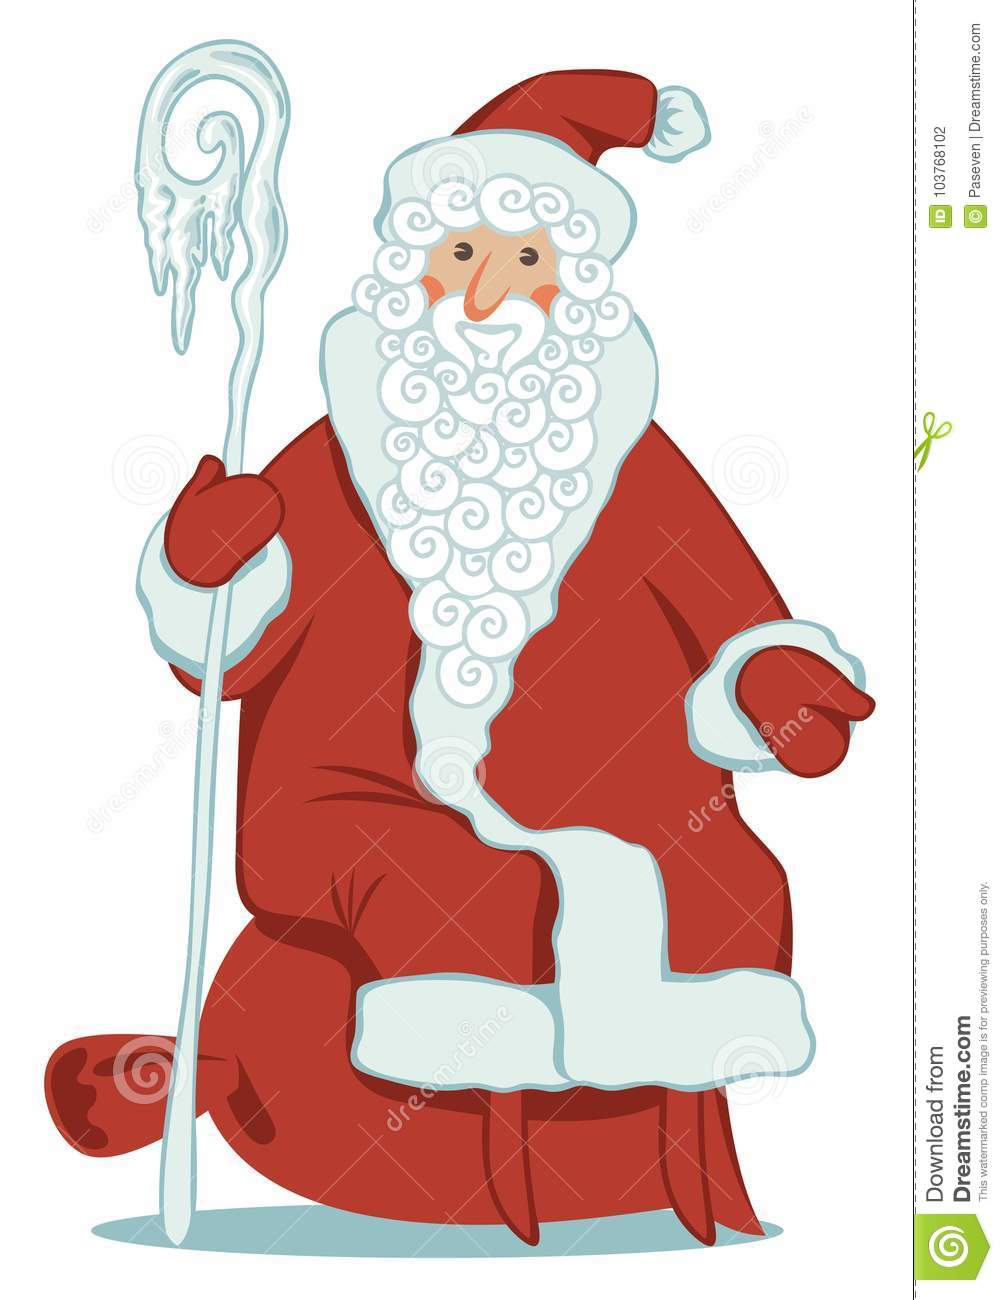 Cartoon santa claus with magic staff and gift bag stock vector download cartoon santa claus with magic staff and gift bag stock vector illustration of card m4hsunfo